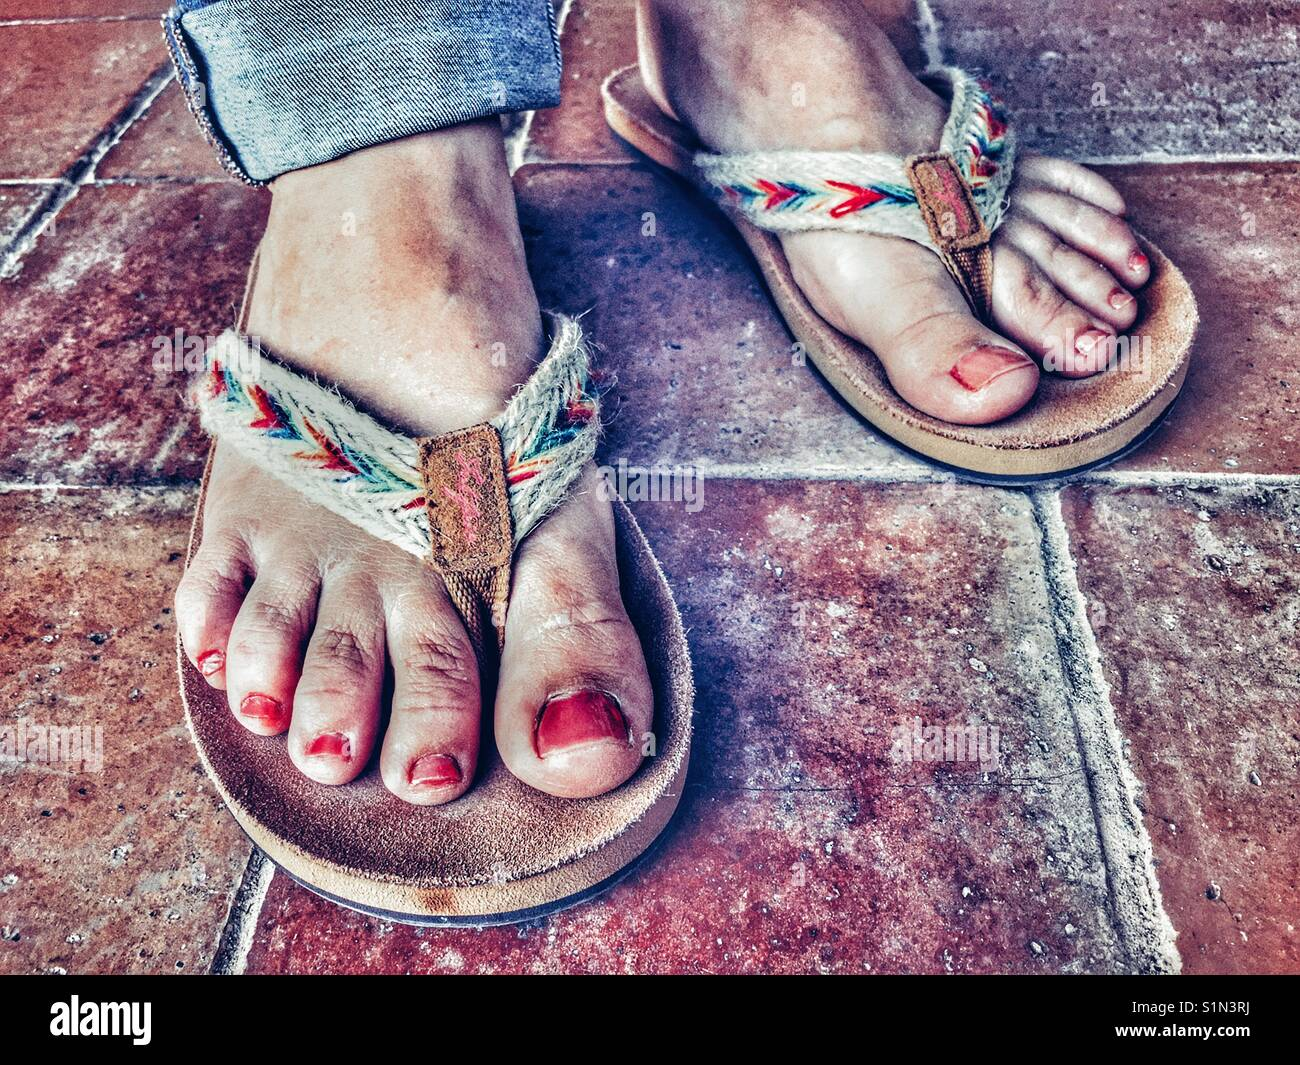 9c512bf895269 Woman Wearing Flip Flops Close Up Stock Photos   Woman Wearing Flip ...